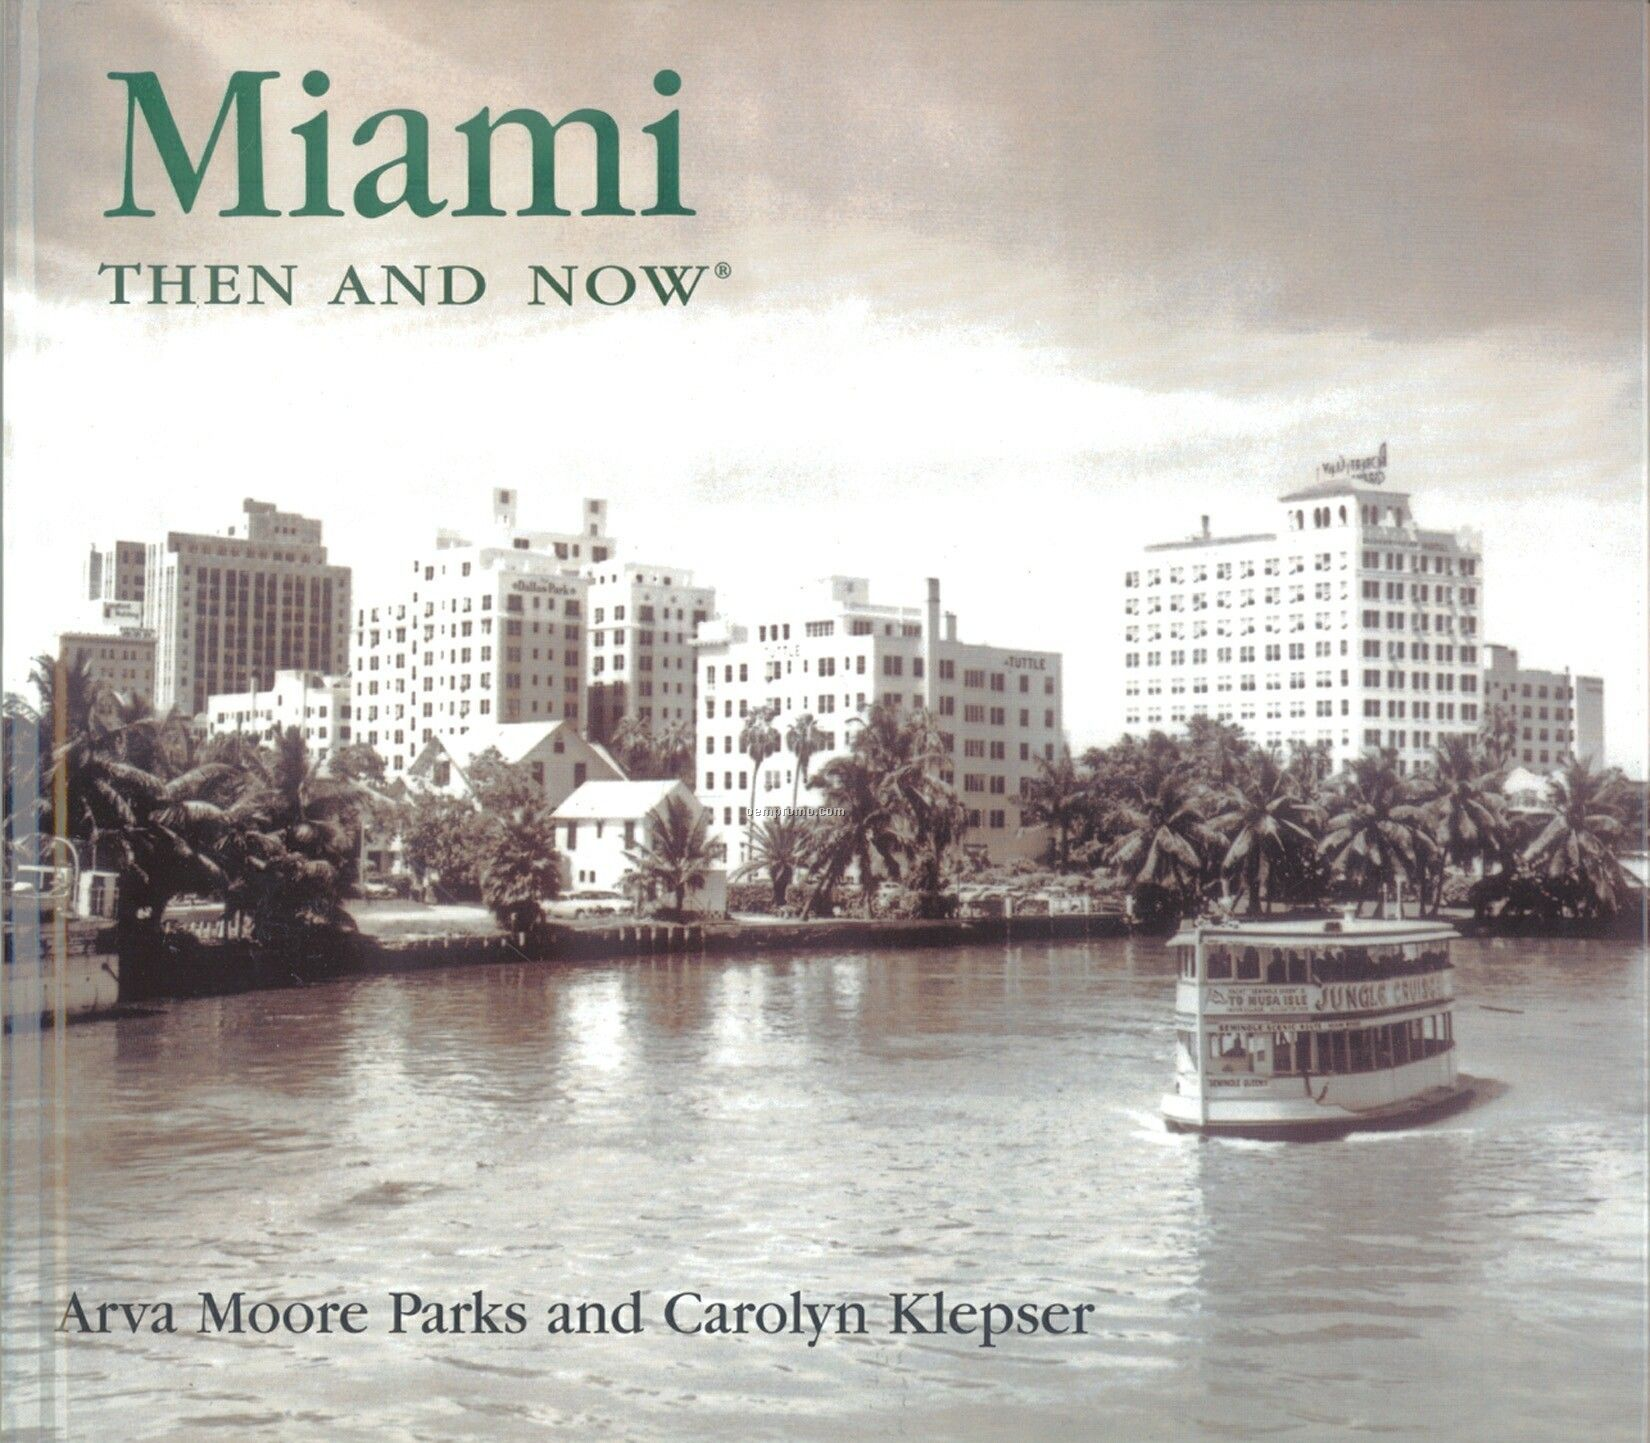 Coffee Table Gift Books - Miami Then And Now - Compact Edition